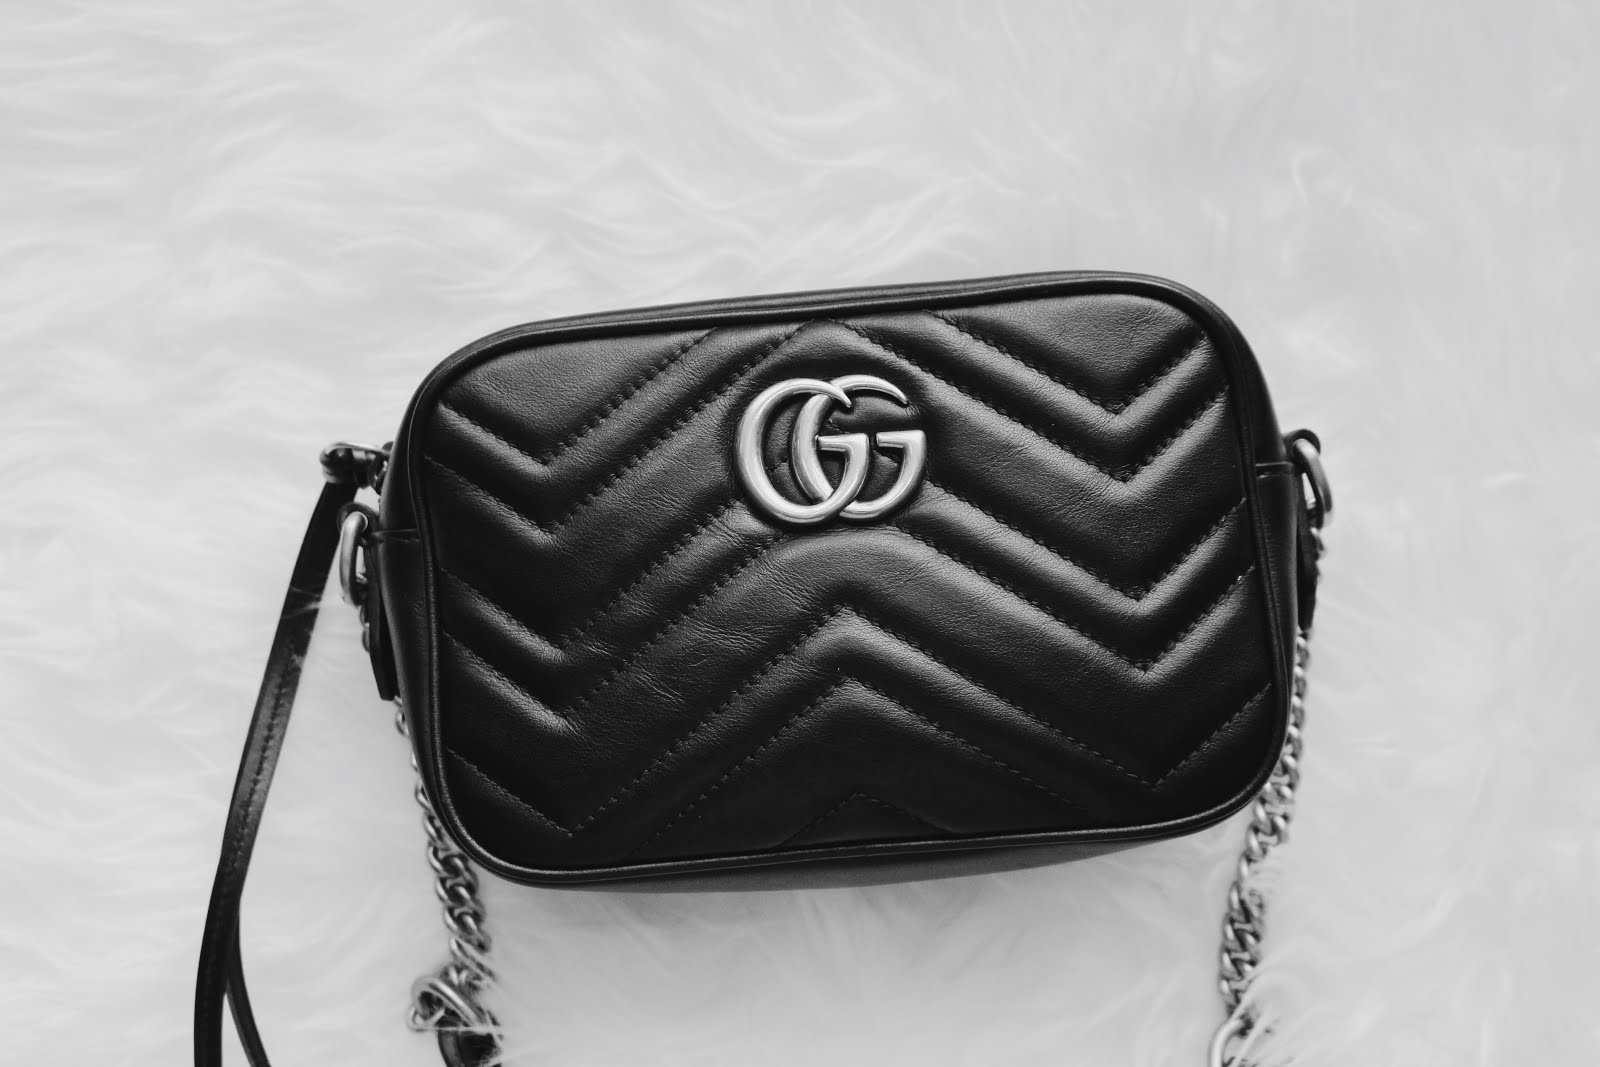 1e9ad8c958b20f A few months ago, I decided to purchase the Gucci GG Marmont Matelassé Mini  Bag. The bag retails at $980 which when deciding between this bag and the  Gucci ...